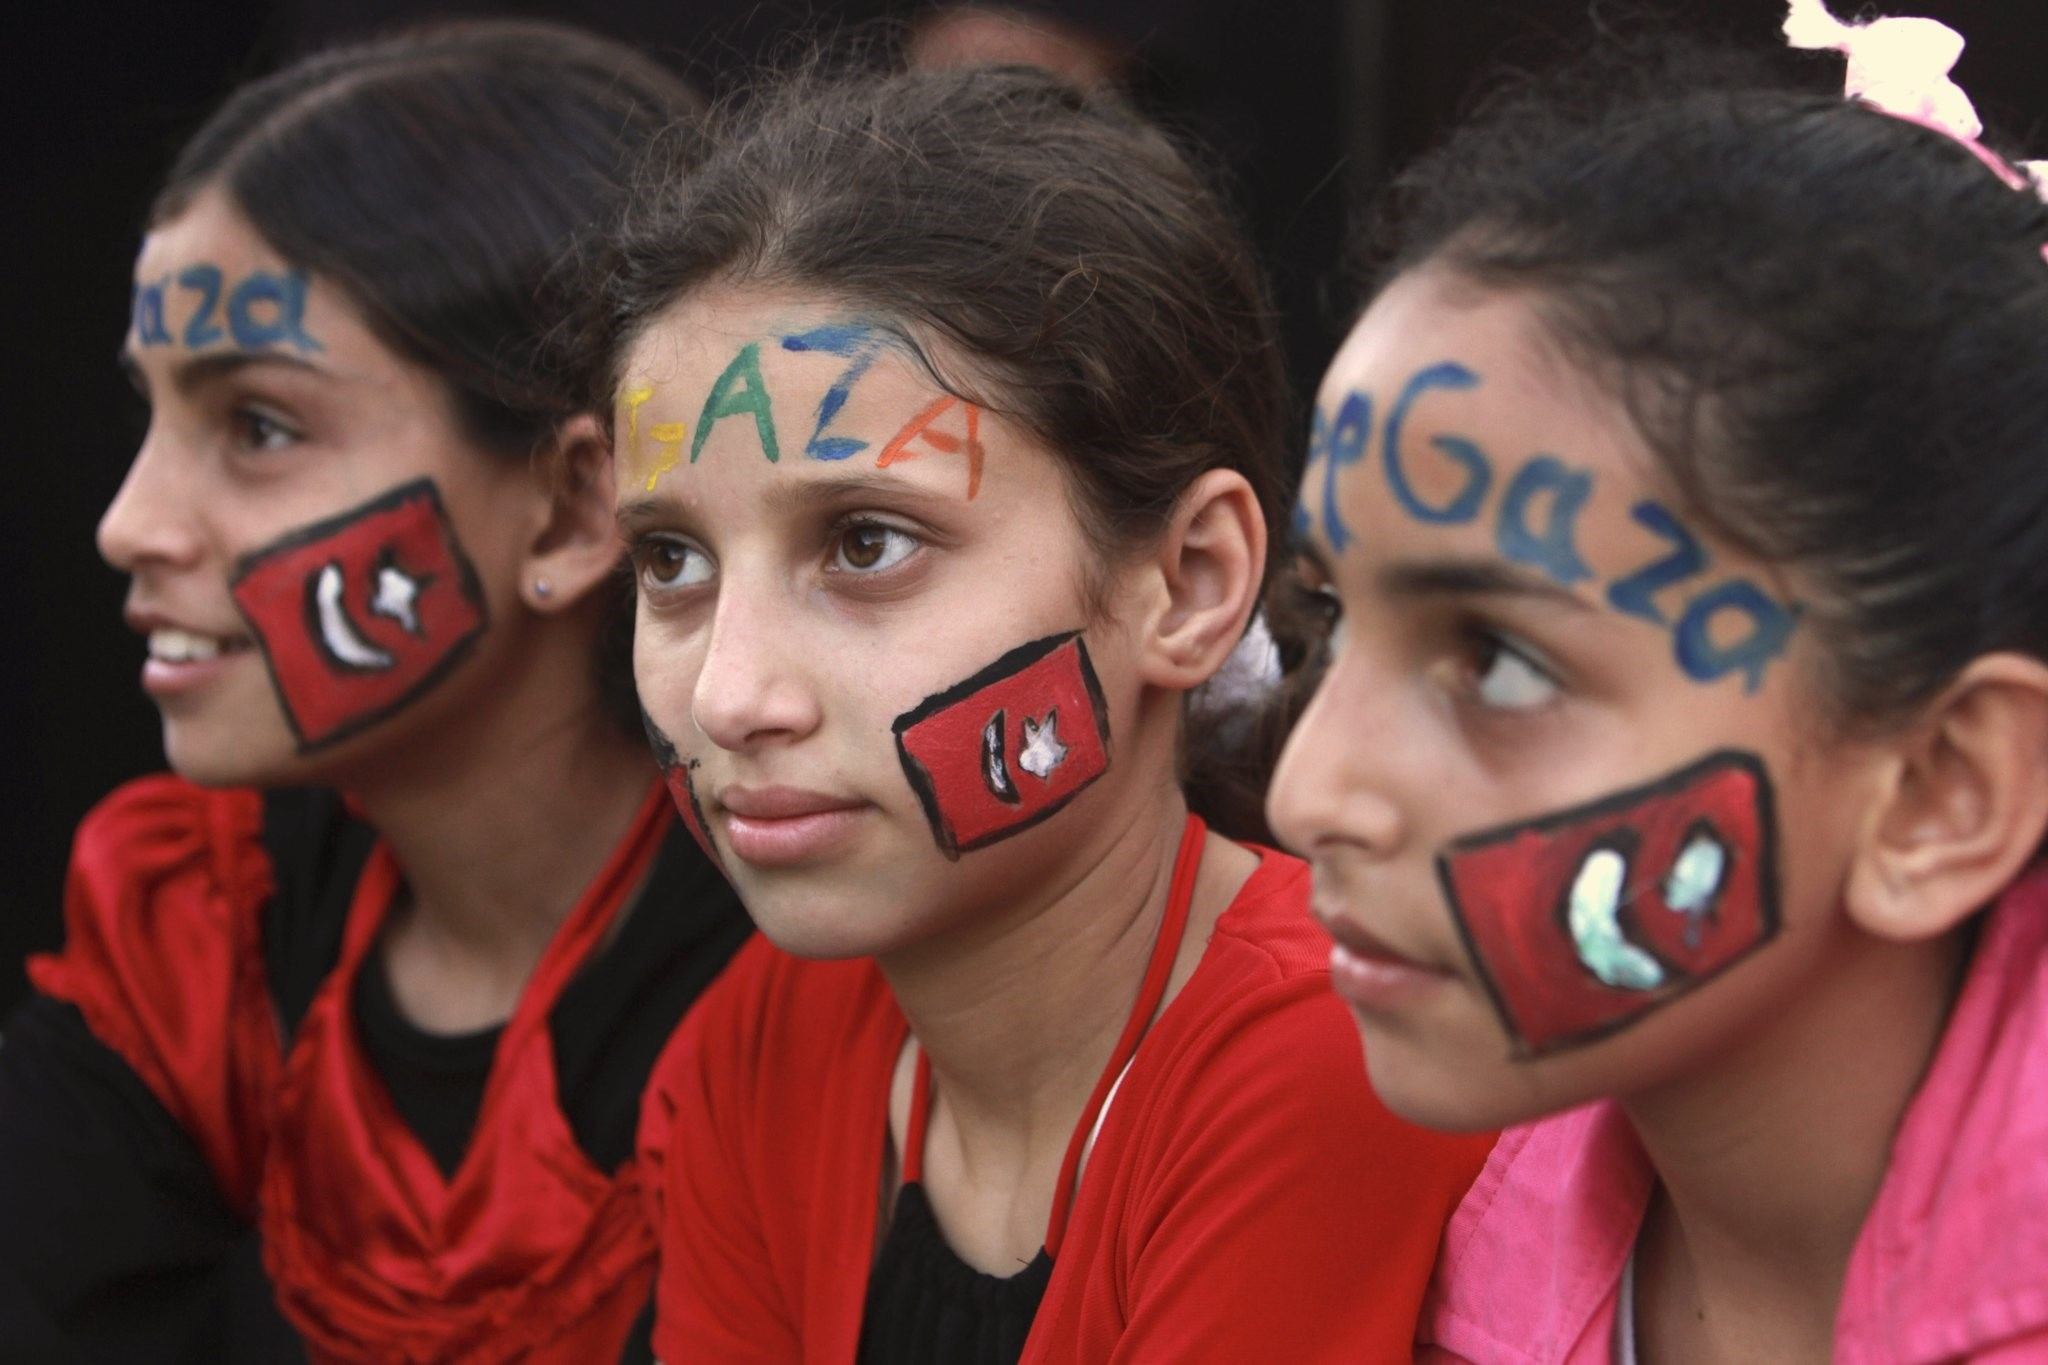 Palestinian children, with the Turkish flags painted their face, attending a protest against the Israeli naval commando raid on a flotilla attempting to break the blockade on Gaza, in Gaza City, June 2, 2010.